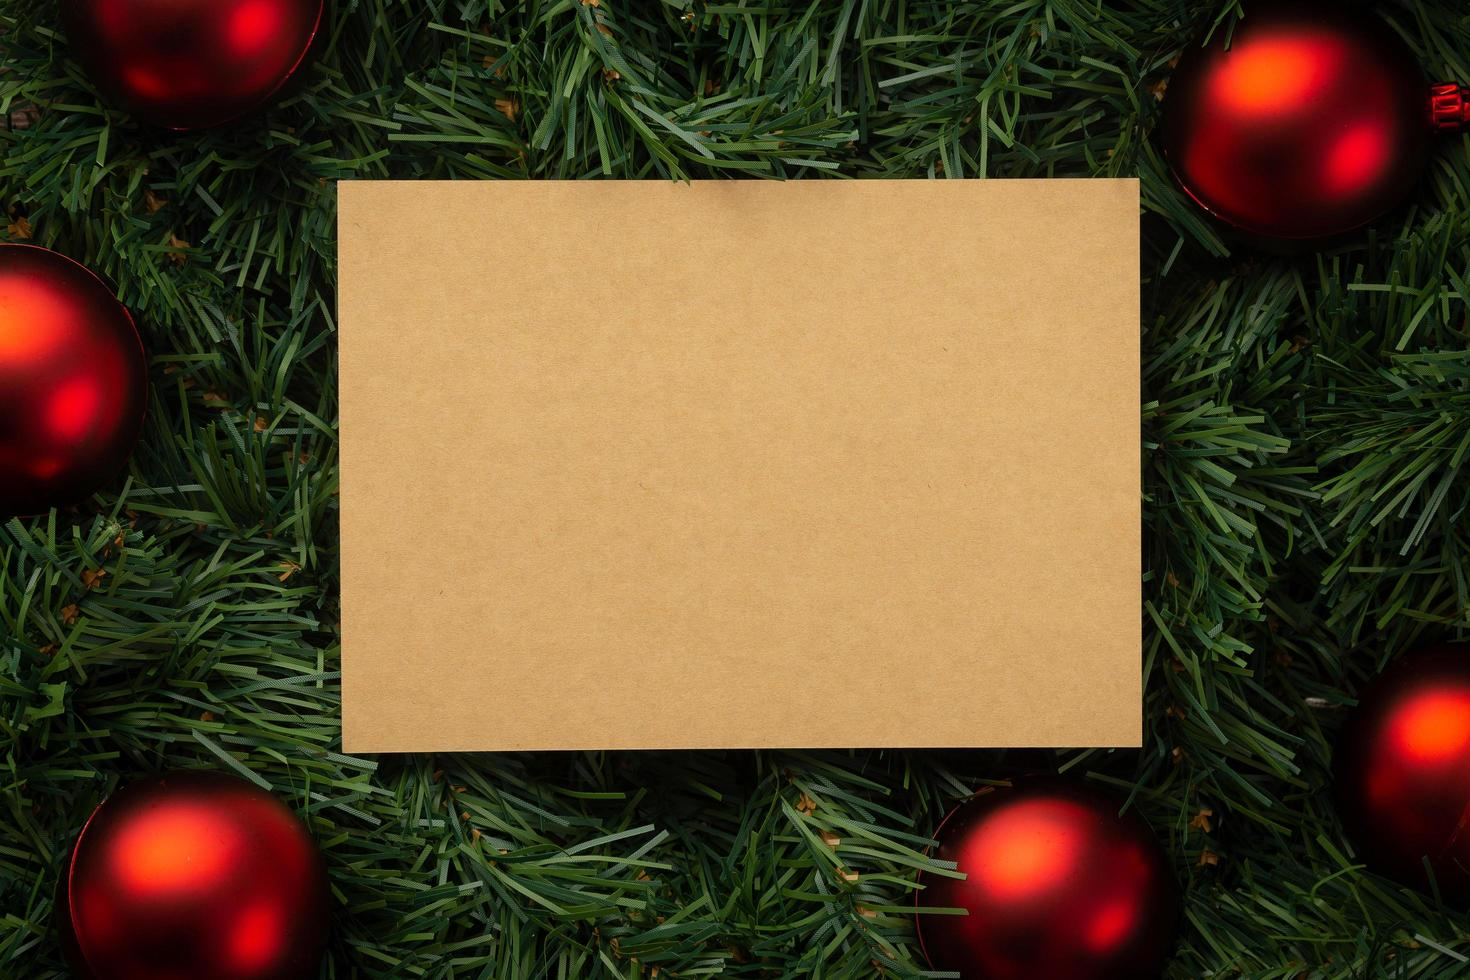 Merry Christmas craft paper note mockup template with pine leaves decorations photo